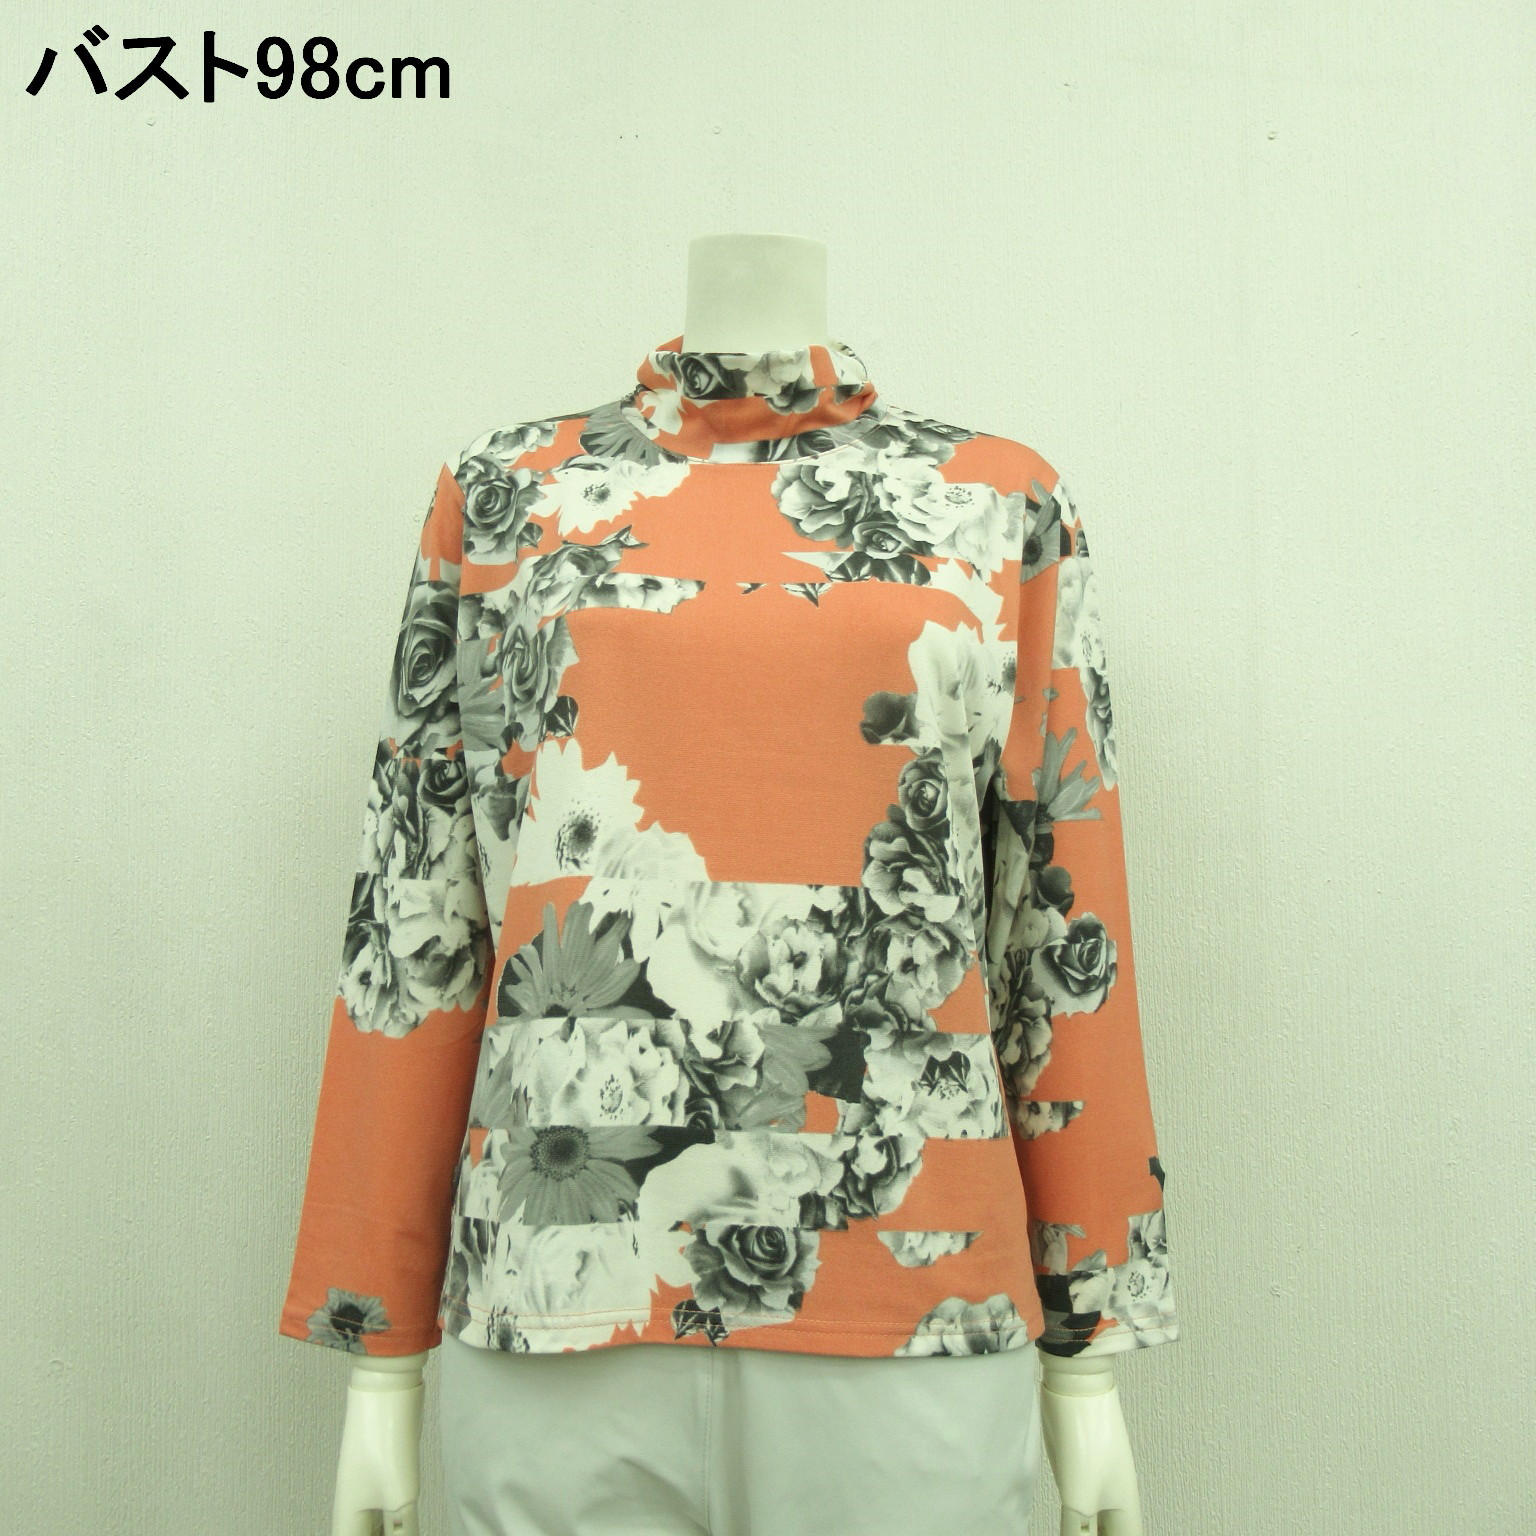 Floral Pattern Neck Shearing High Neck T-shirt | Export Japanese products  to the world at wholesale prices - SUPER DELIVERY